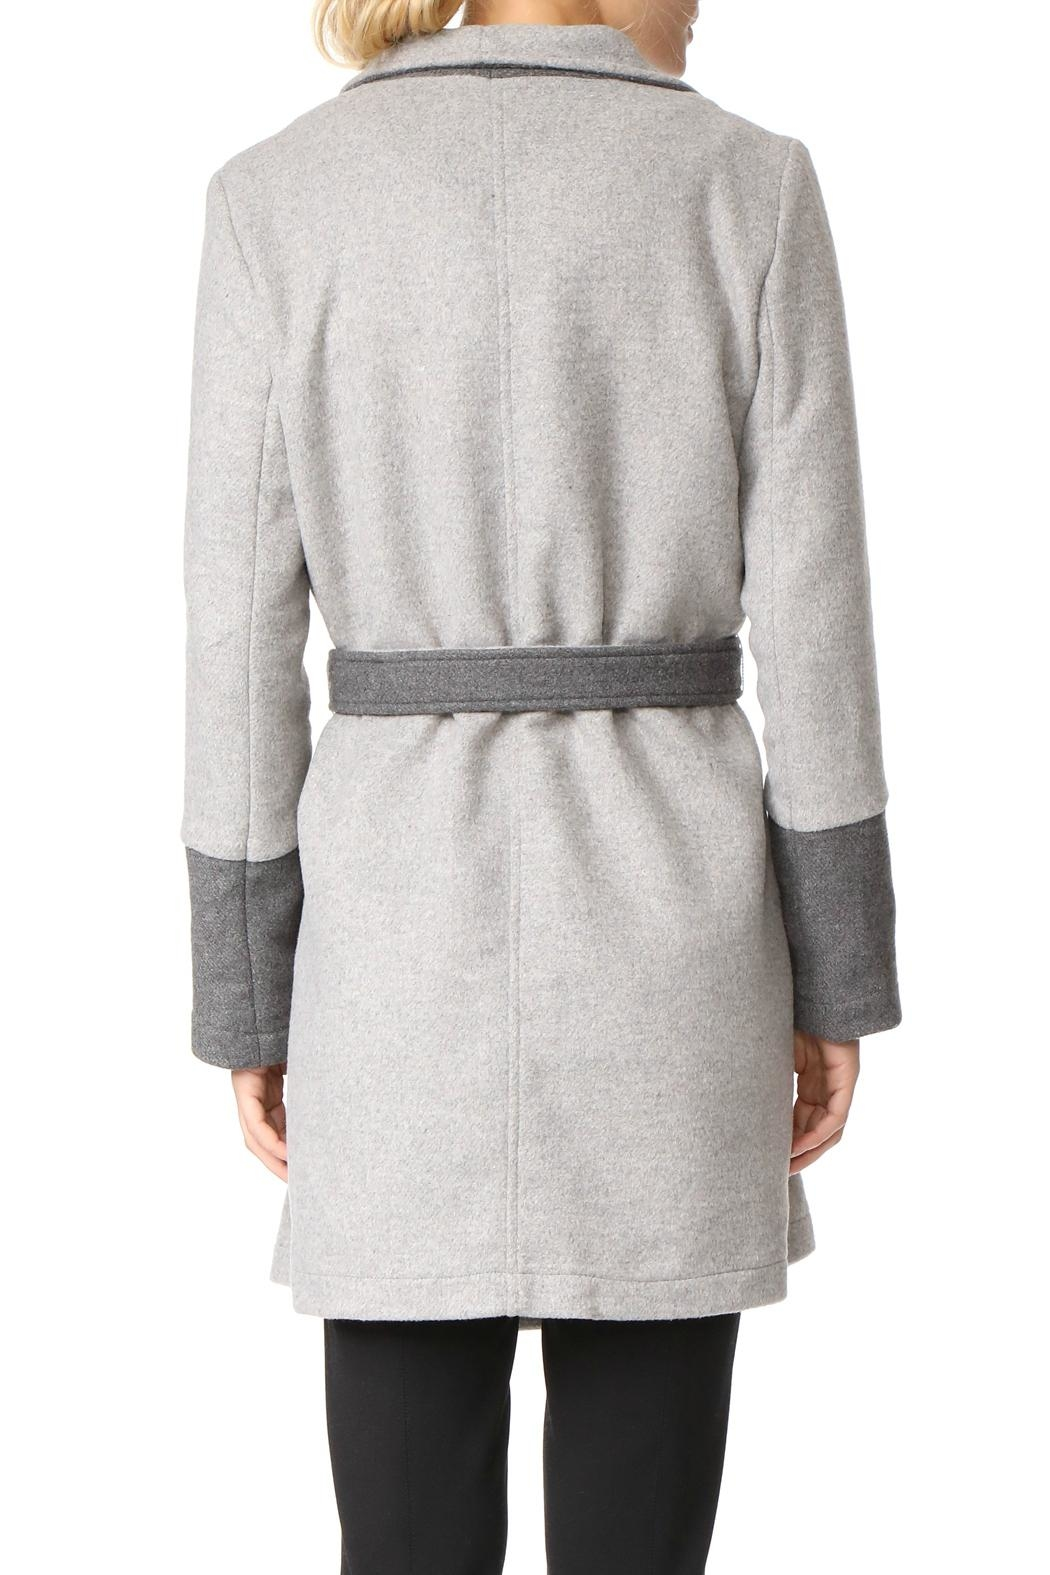 Cupcakes & Cashmere Colorblocked Wrap Coat - Front Full Image